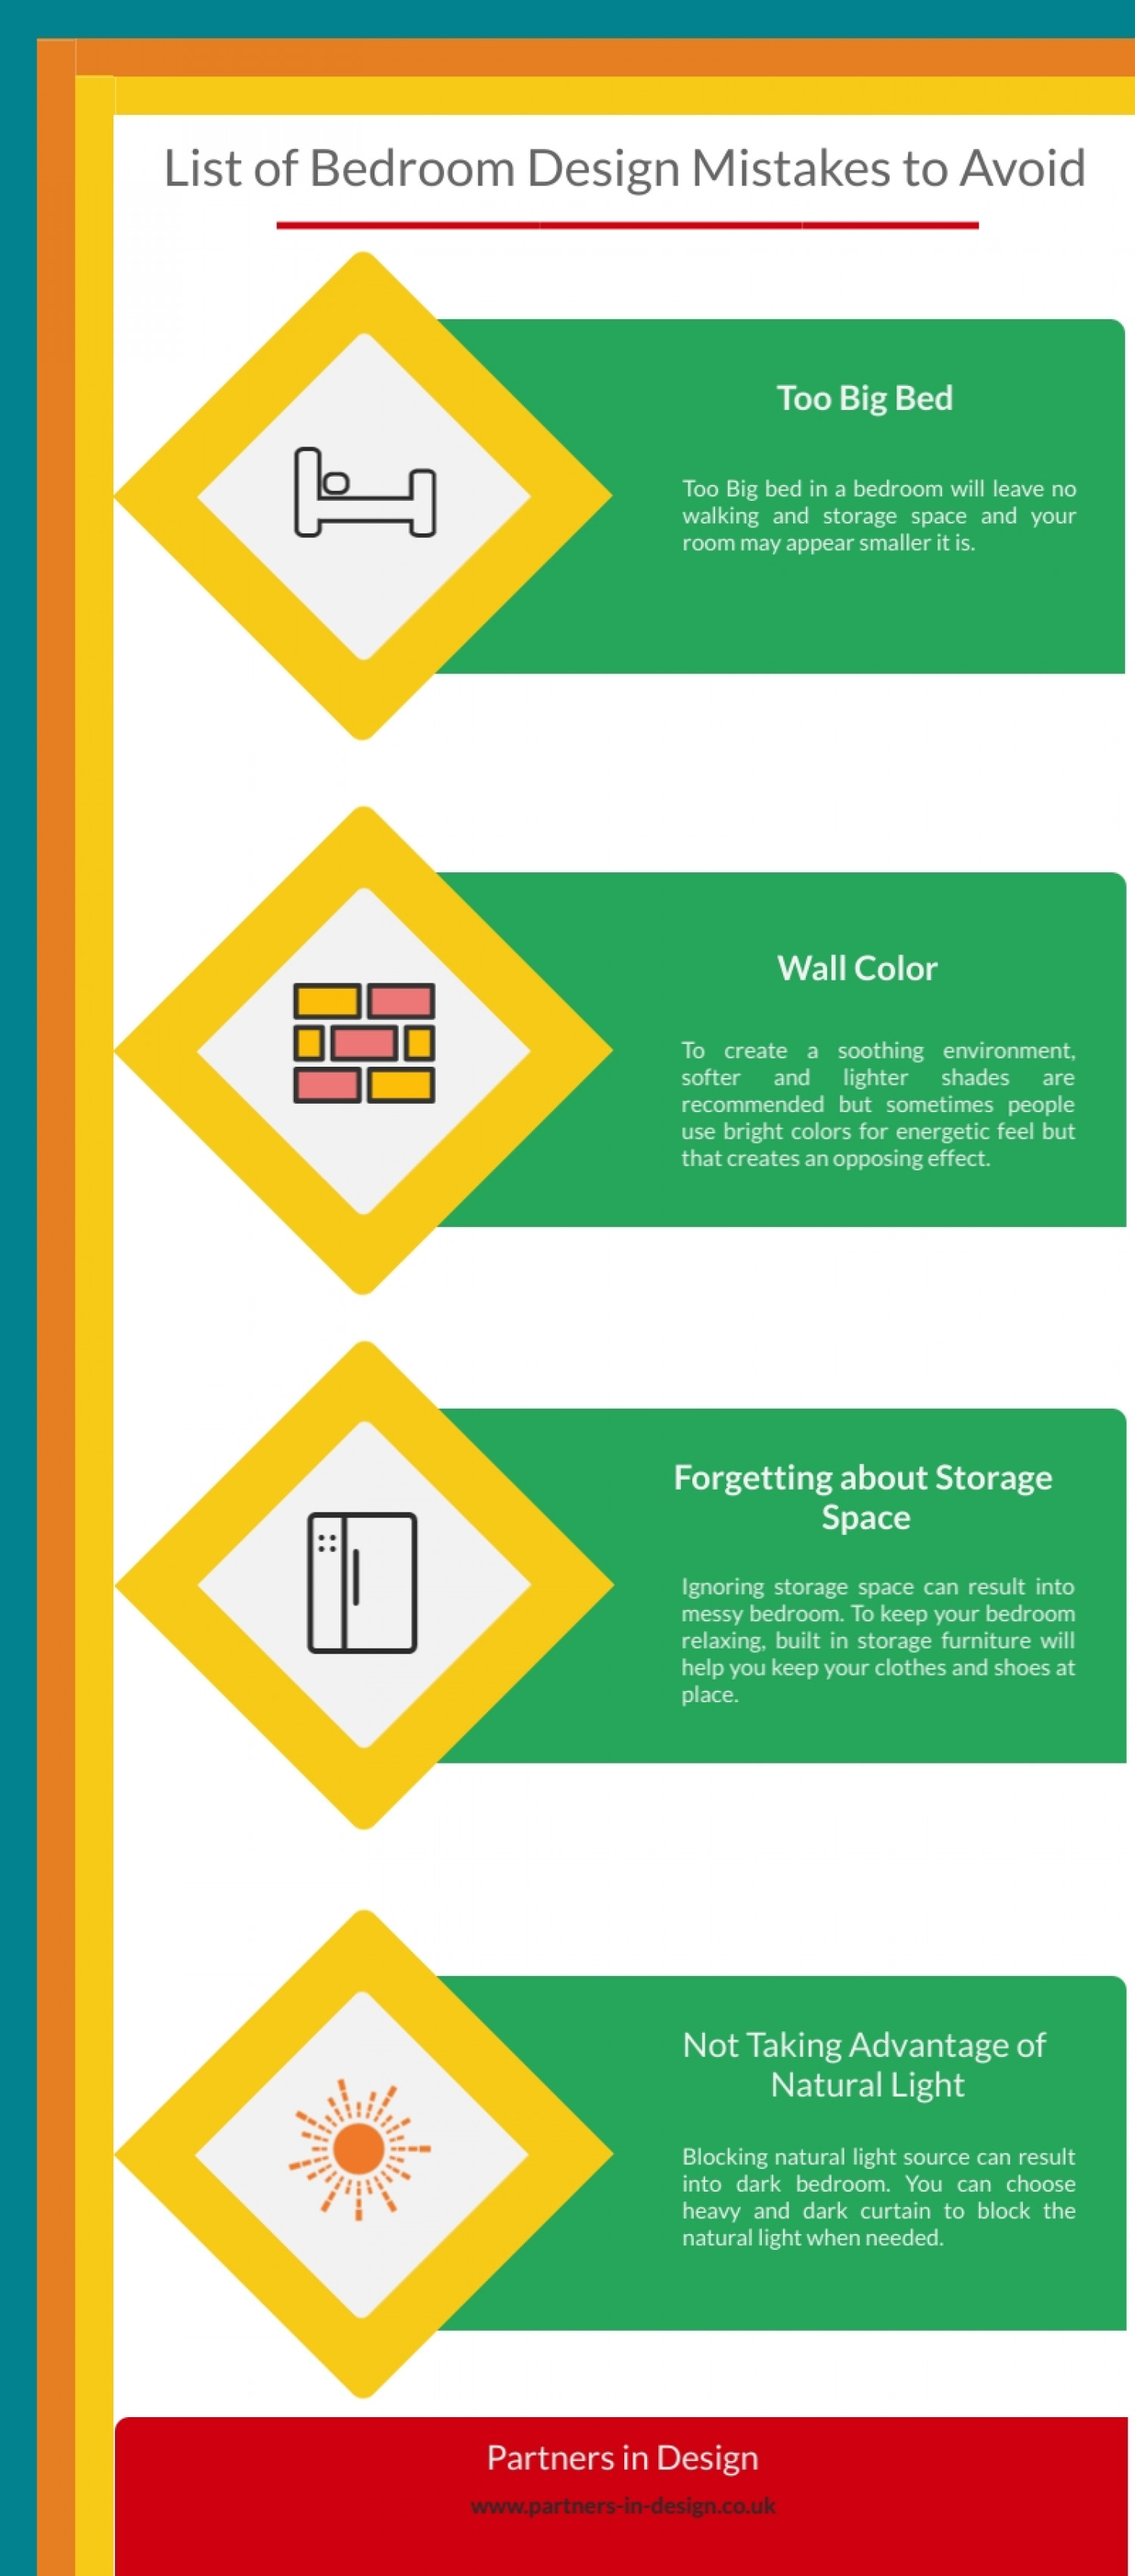 List of Bedroom Design Mistakes to Avoid Infographic